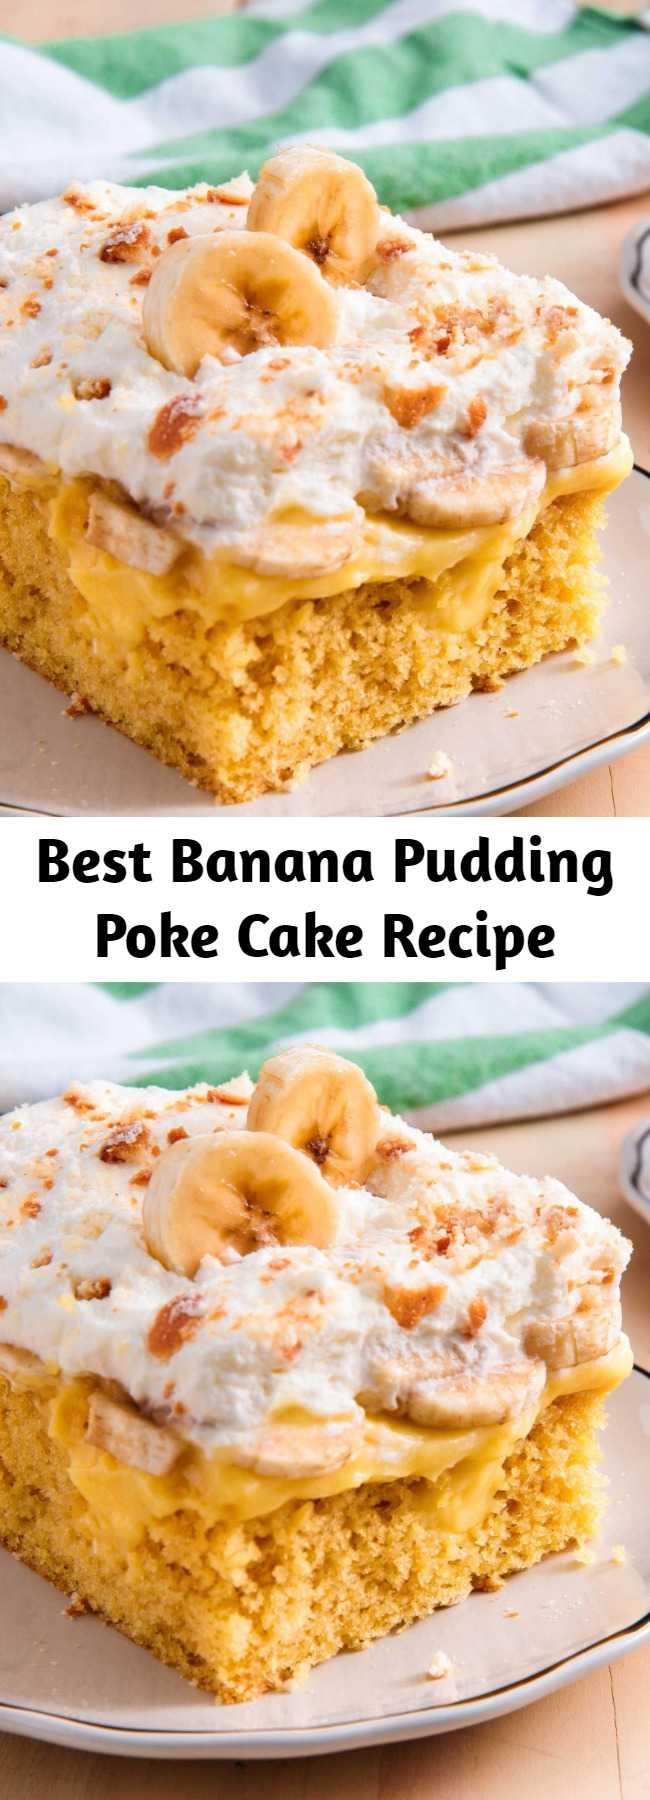 Best Banana Pudding Poke Cake Recipe - This is one of our all-time favorite poke cakes—and we've made lots.